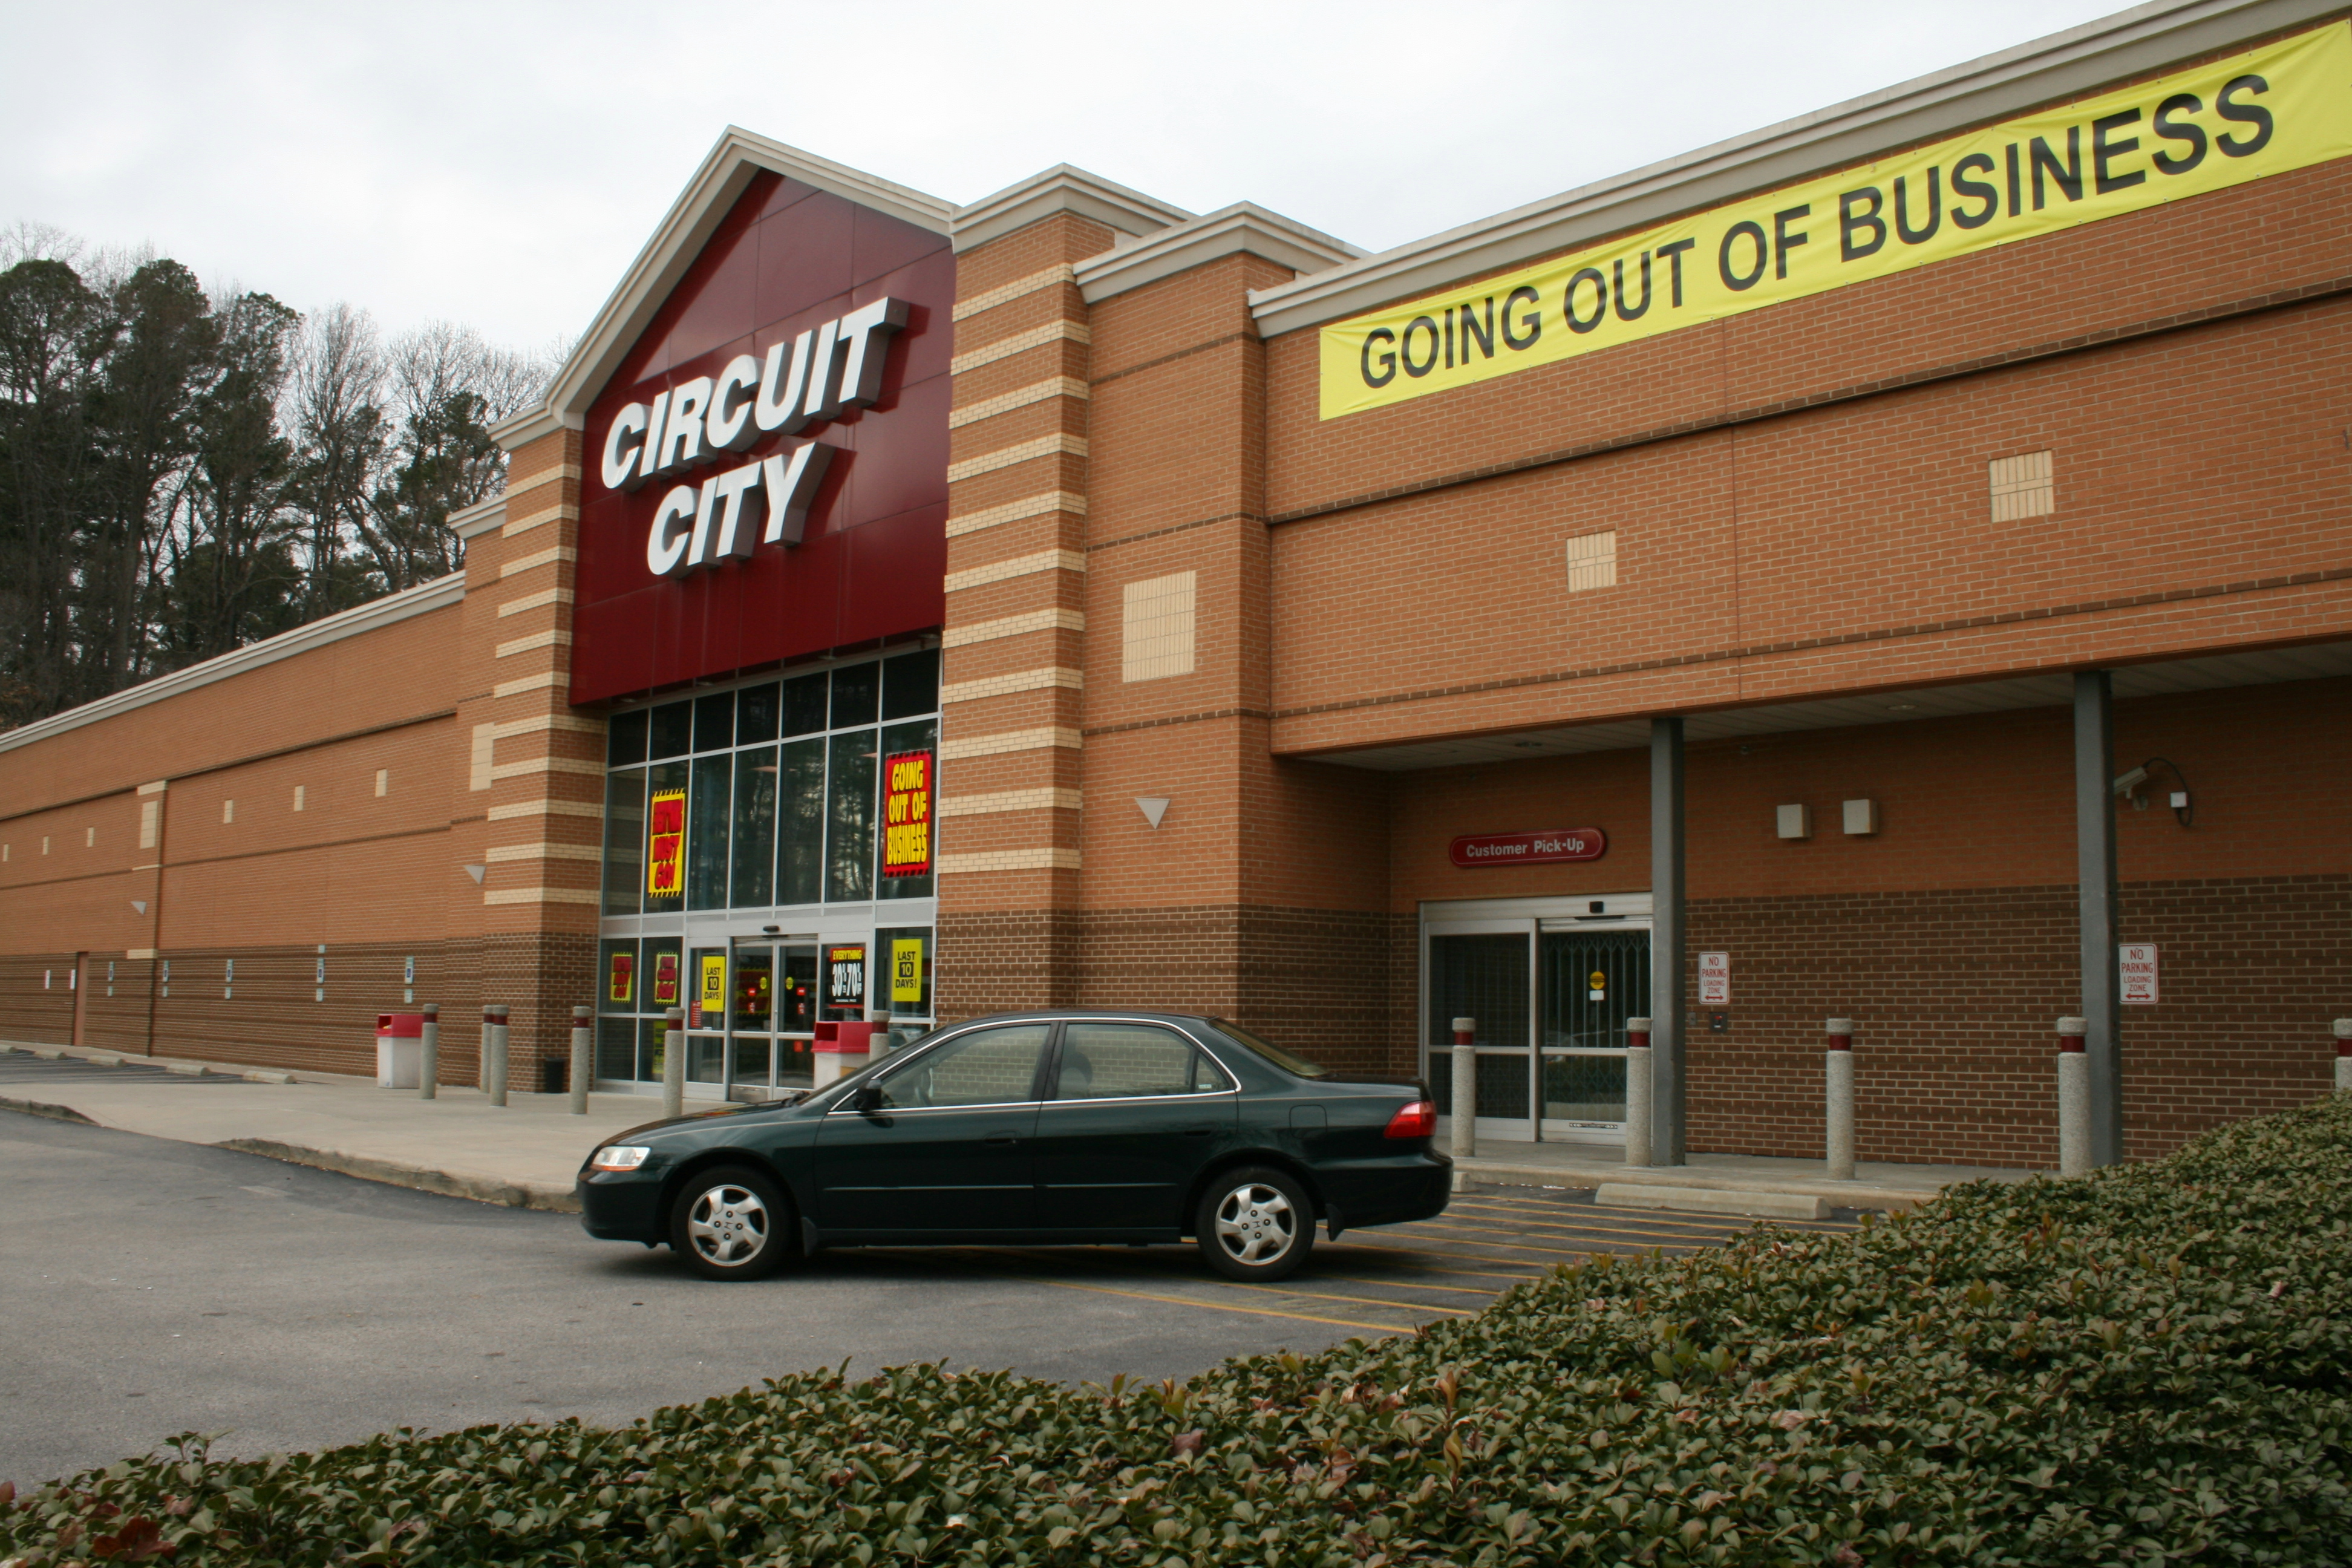 File 2009 02 26 circuit city going out of for D furniture galleries going out of business